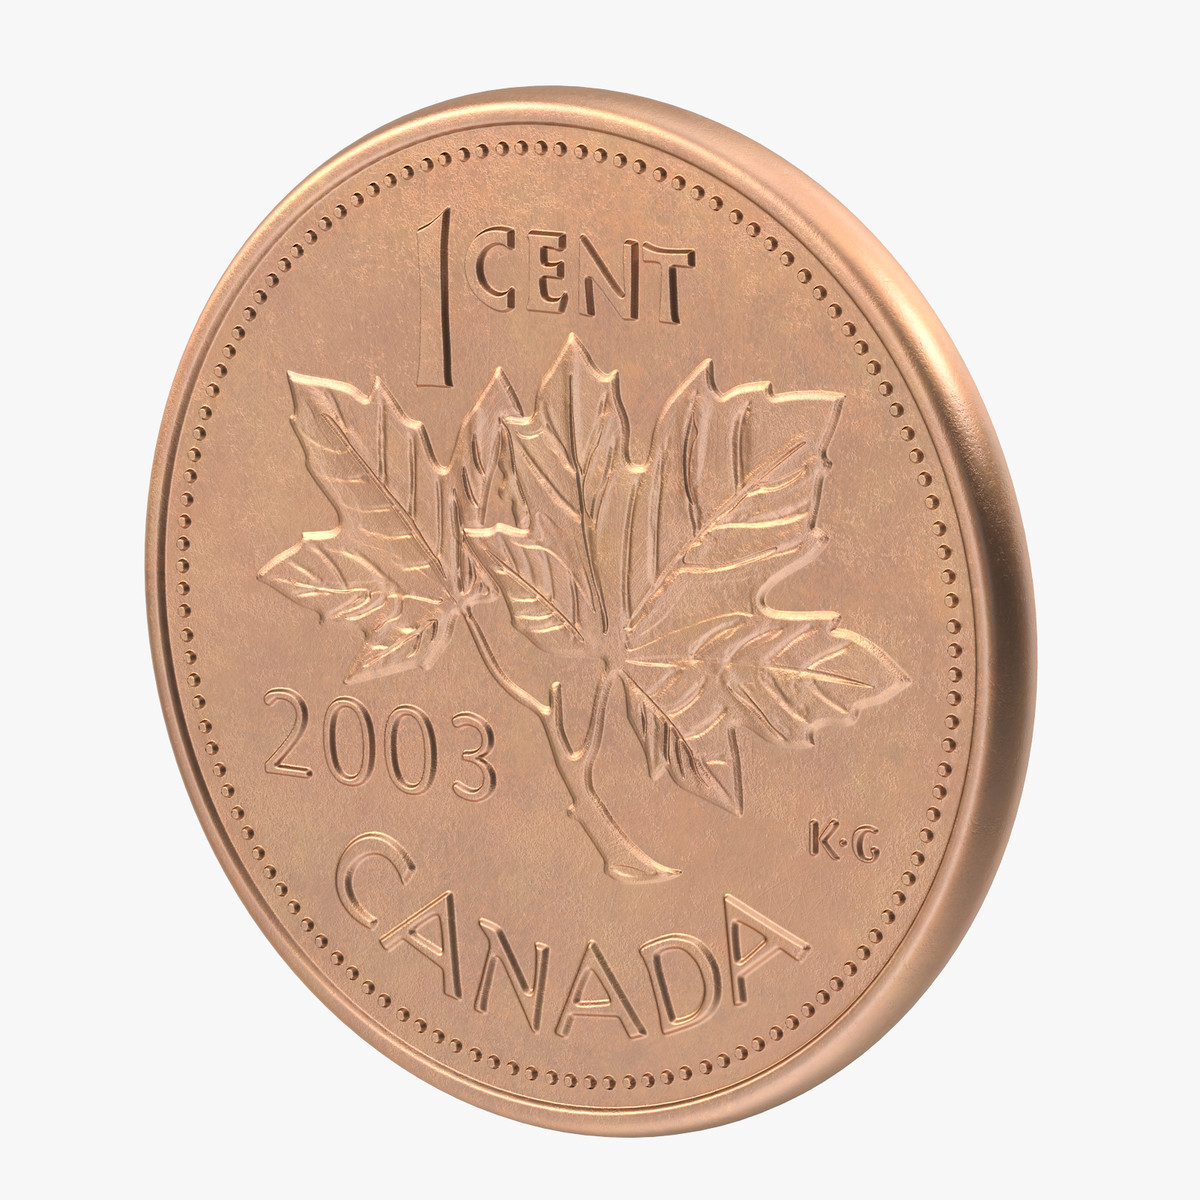 1 Cent And Dollar Canada Coins